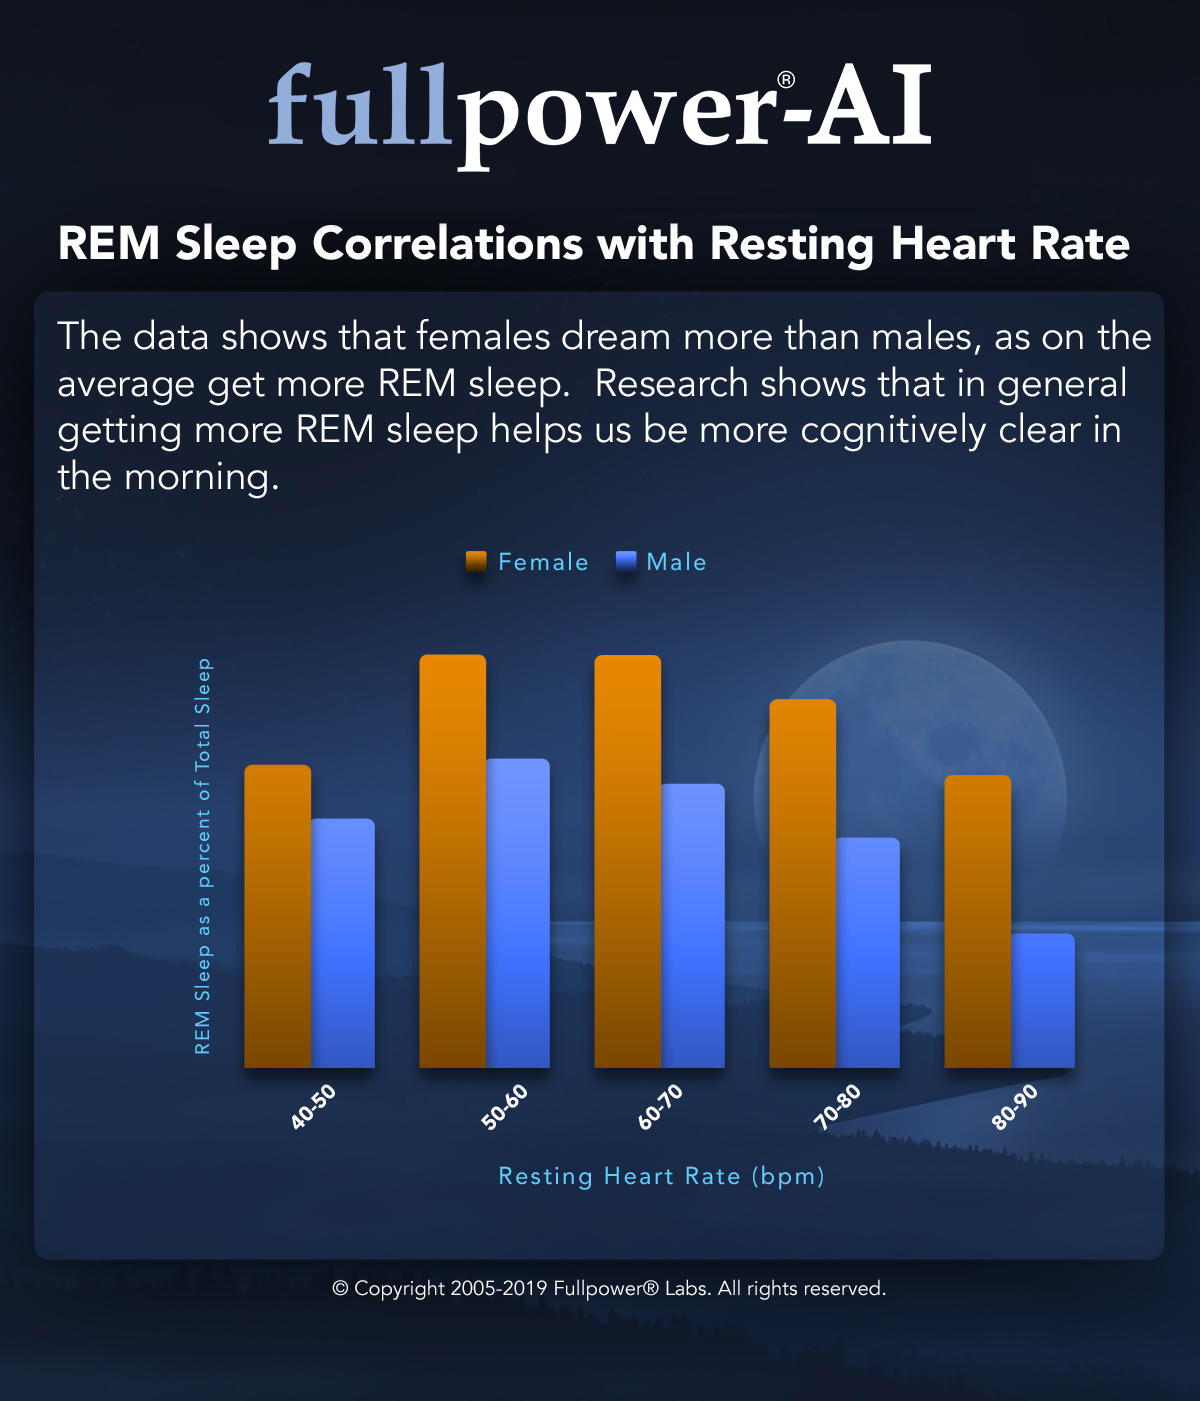 rem-sleep-correlations-with-resting-heart-rate